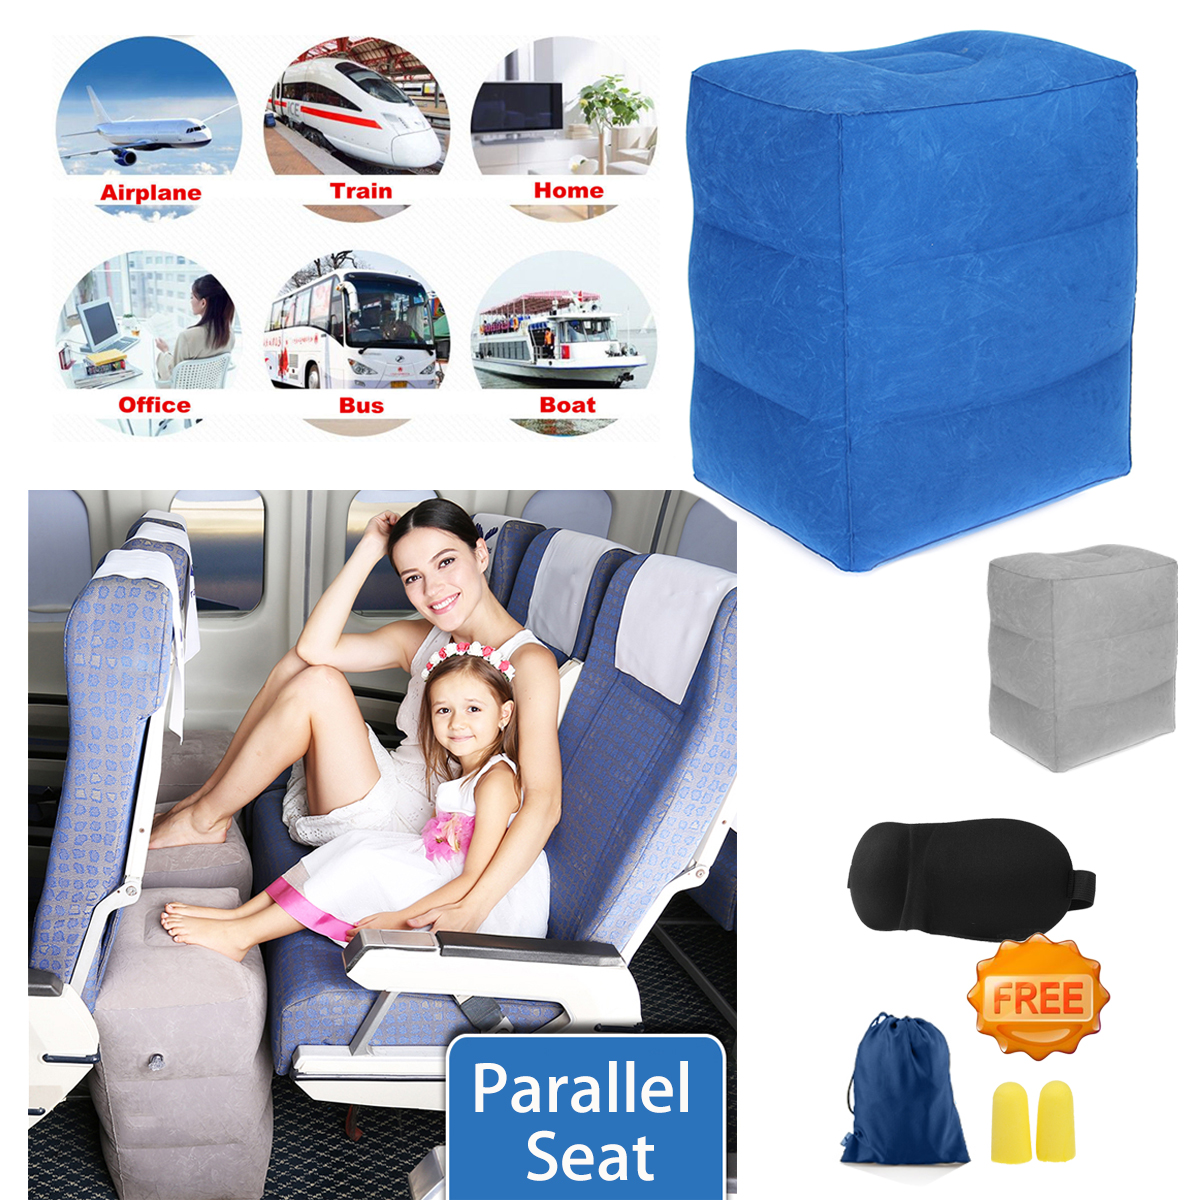 40x45x30CM Car Airplane Inflatable Travel Footrest Parallel Seat Sleep Pillow Cushion